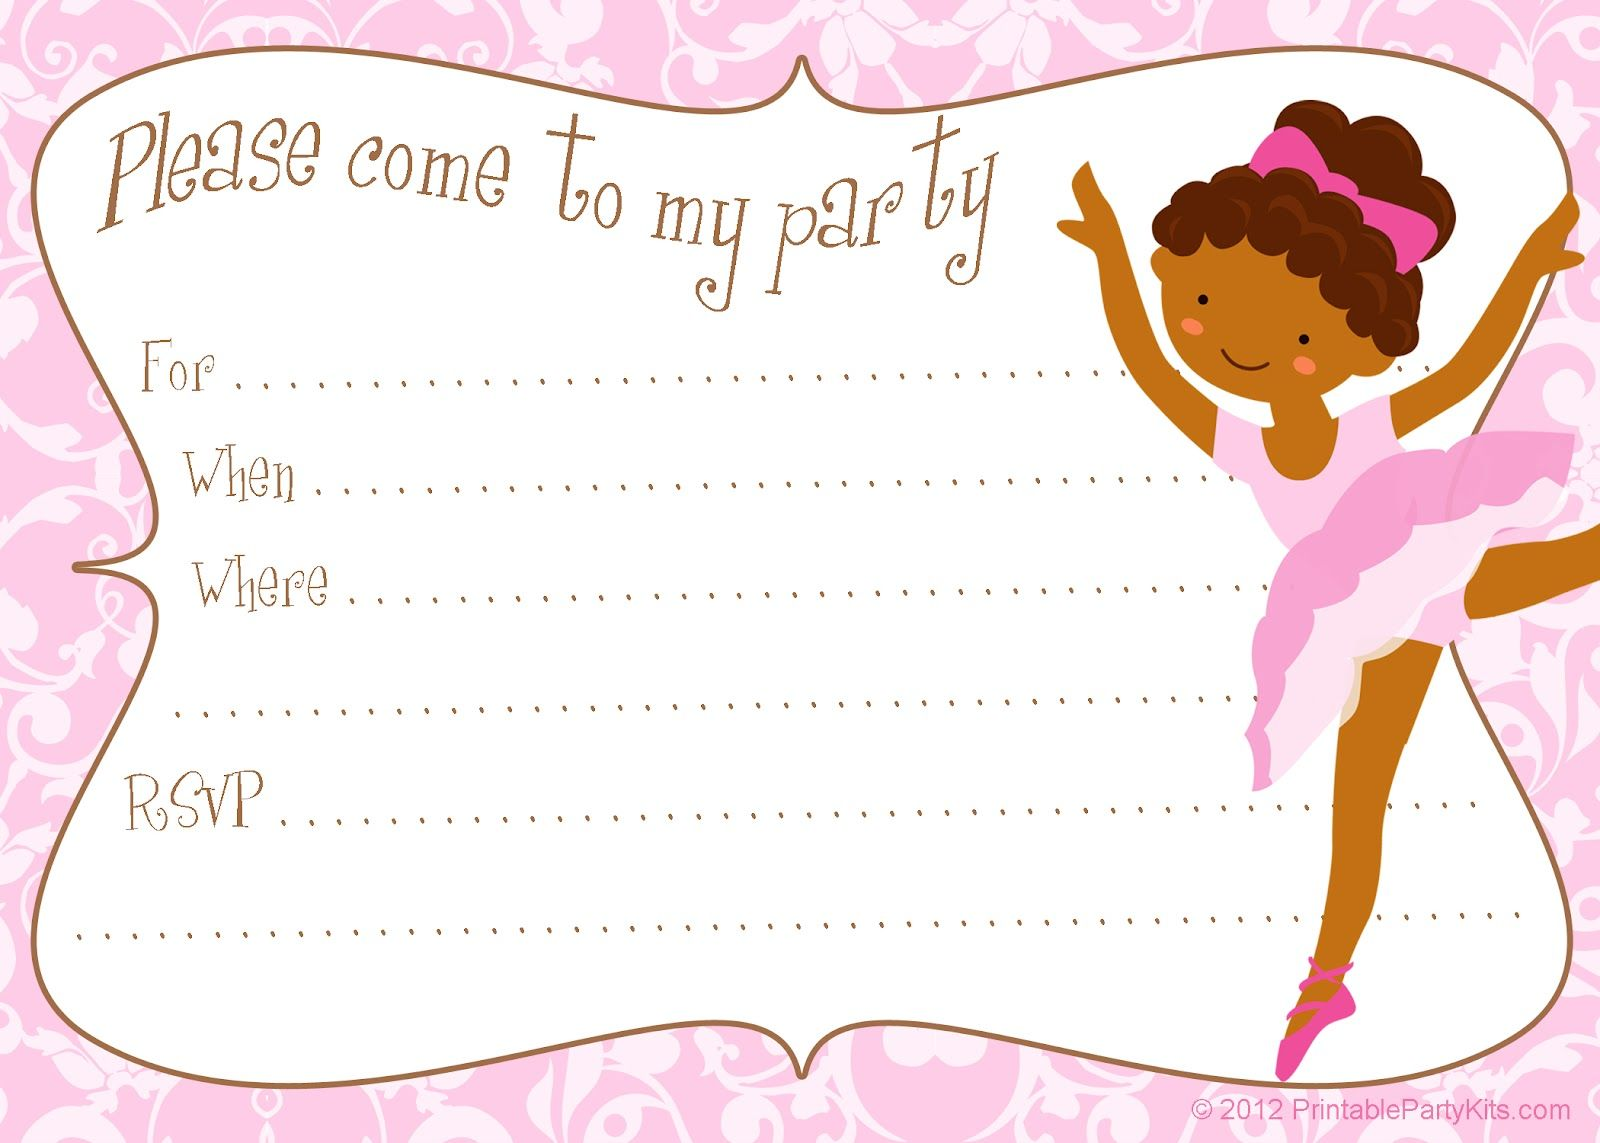 Free Printable Party Invitations: Printable Free Ballerina Party ...